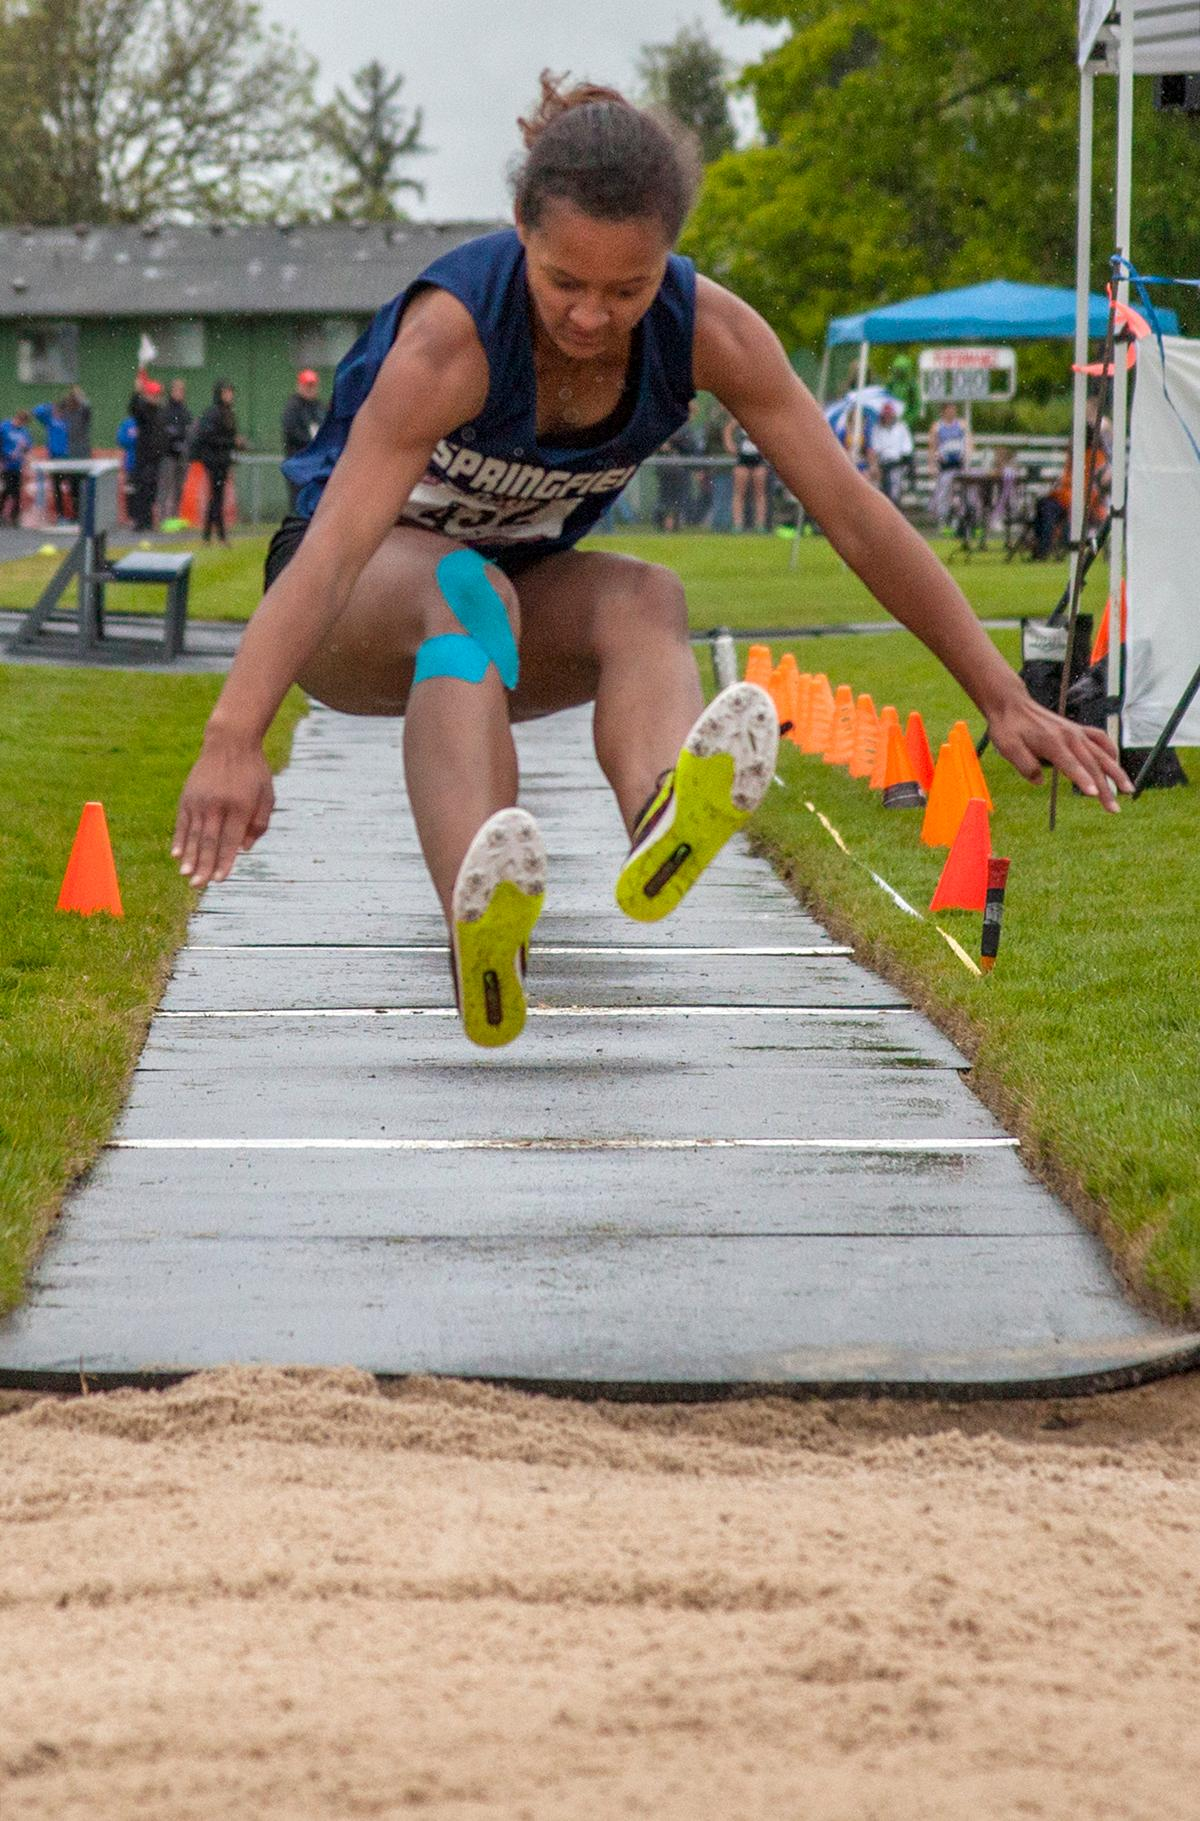 "Gabriel Mathews from Springfield High School wins the Women's Triple Jump event with the mark of 34'4"" at the 5A-3 Midwestern League District Track Championship. Photo by Vannie Cooper, Oregon News Lab"